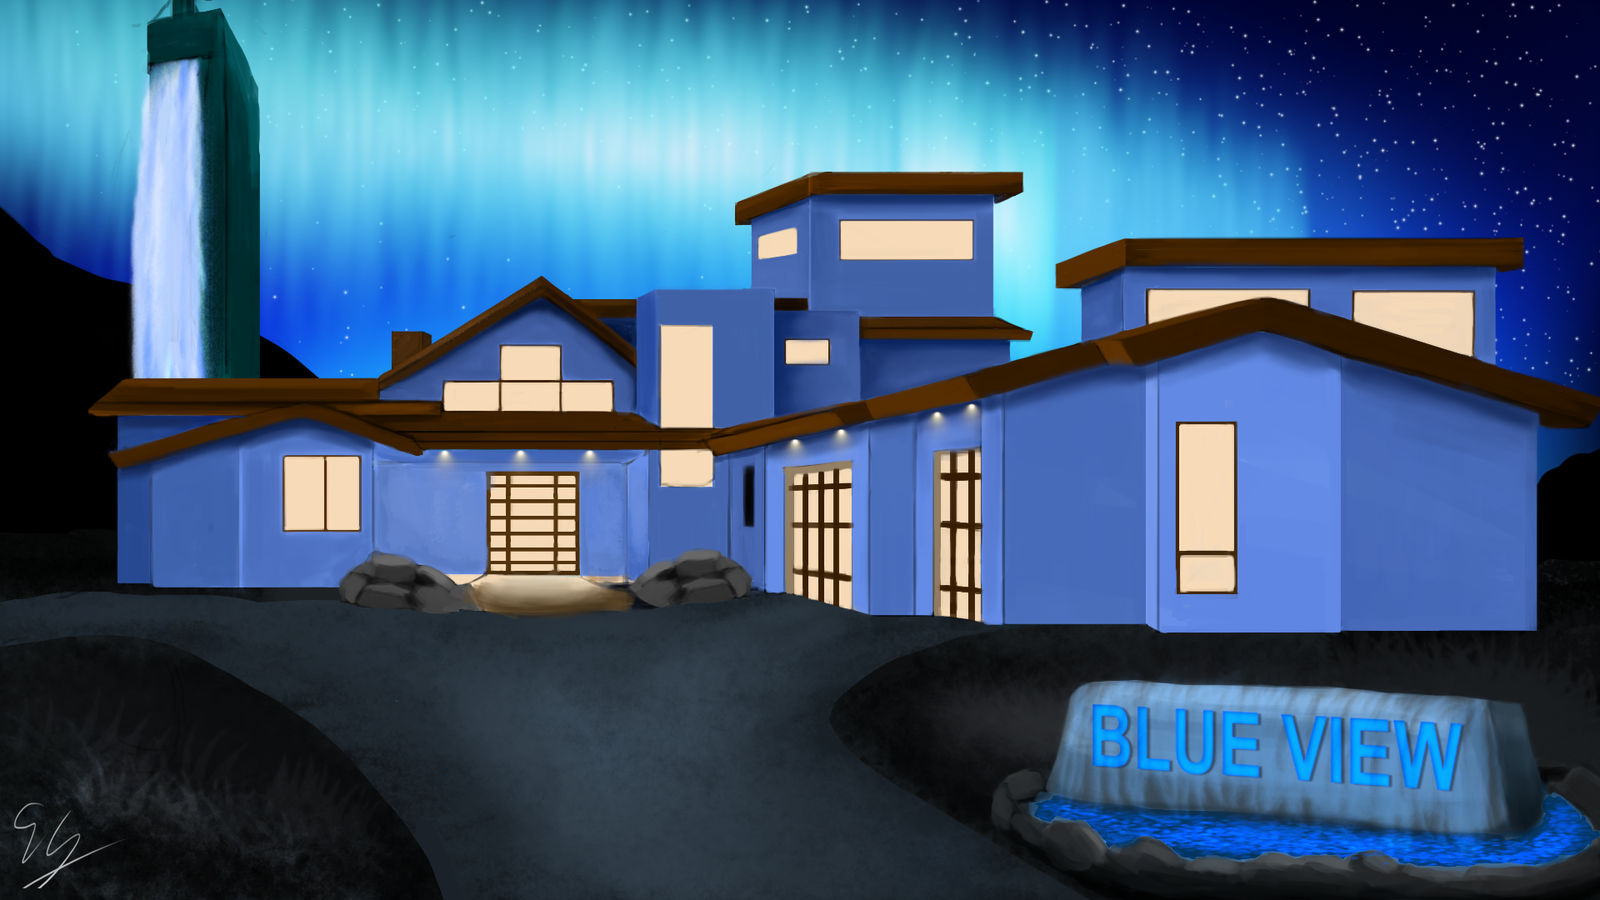 Blue View Mansion